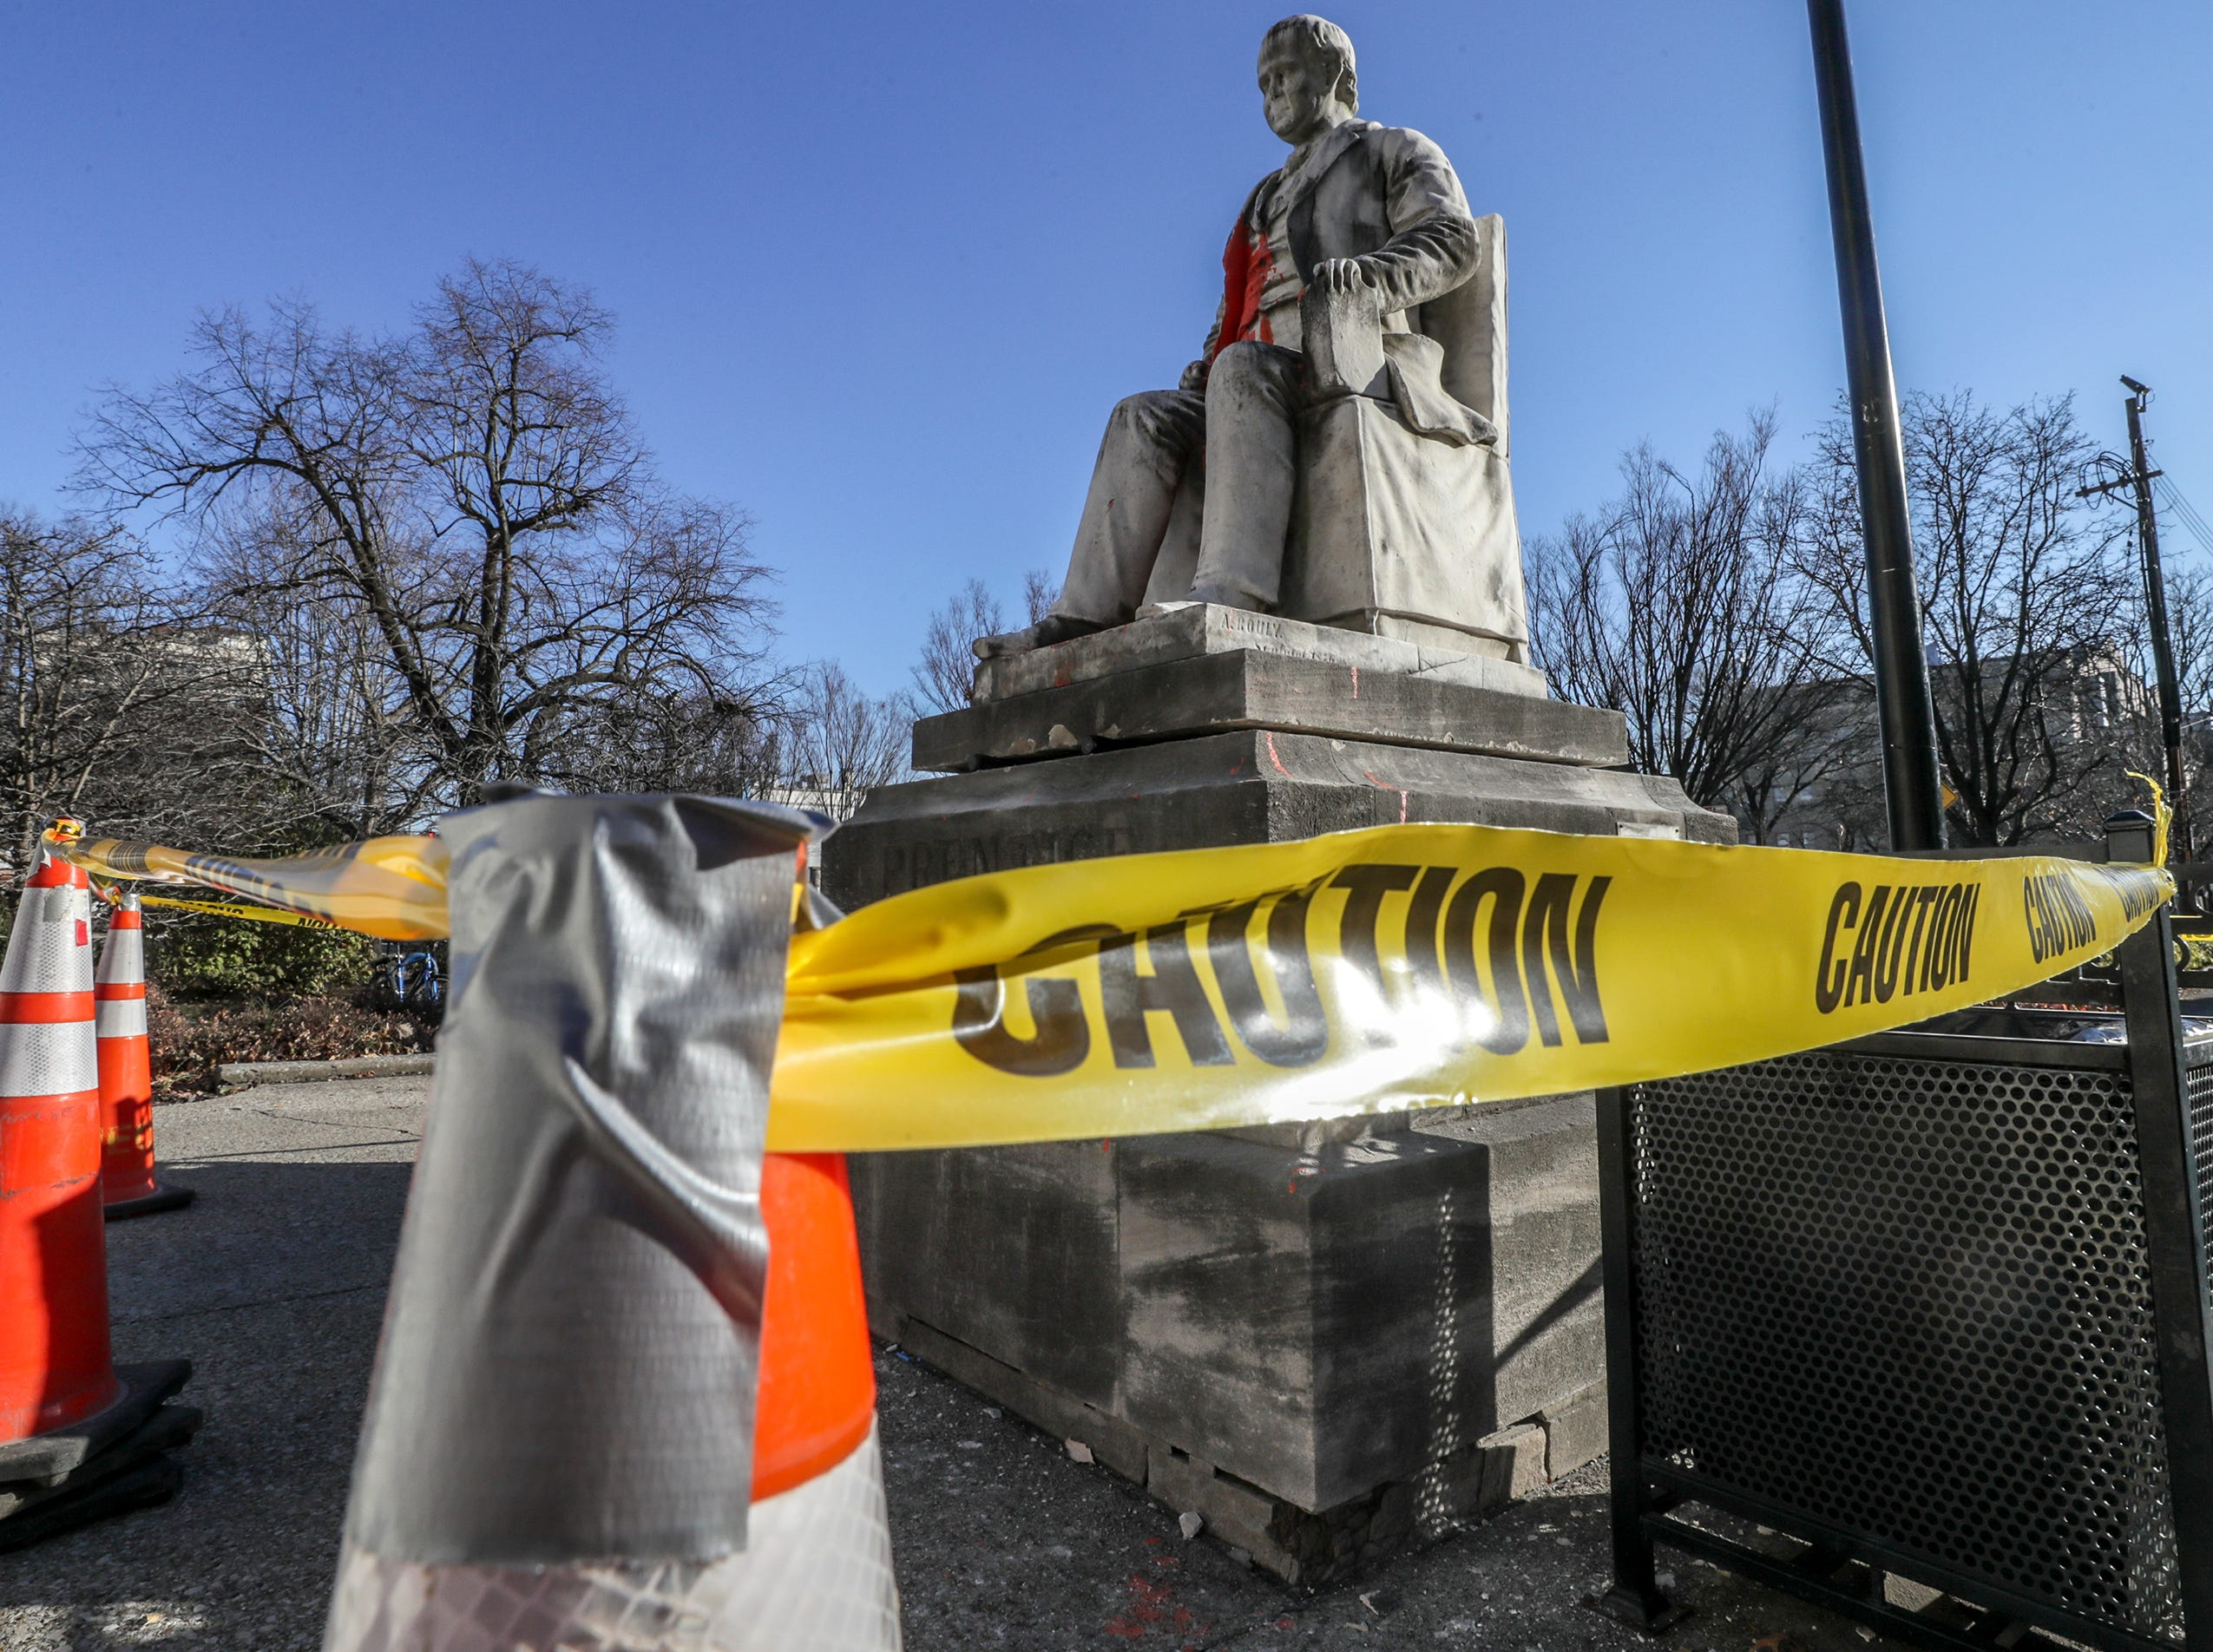 Statue of anti-Catholic outside Louisville library to be removed